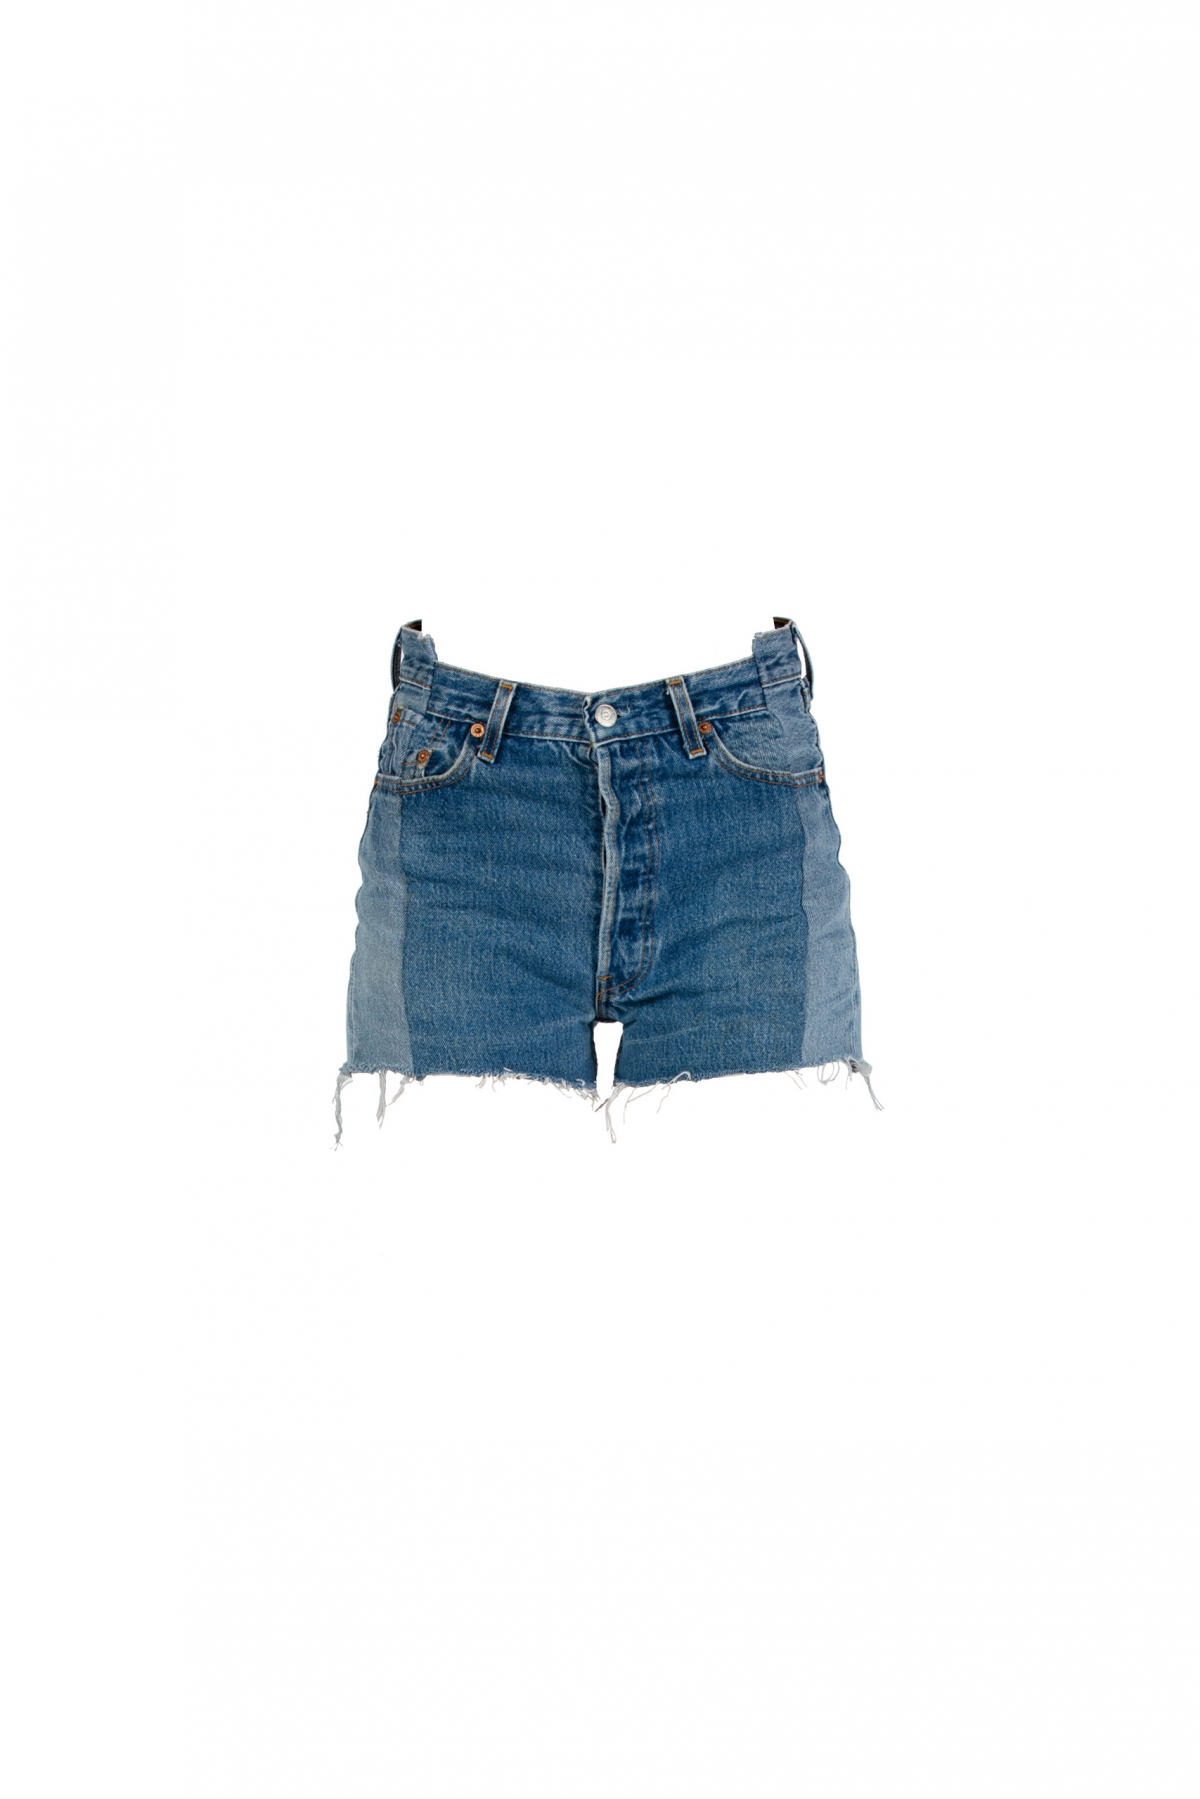 Two Toned Shorts by EB Denim, available on ebdenim.com for $215 Hailey Baldwin Shorts SIMILAR PRODUCT